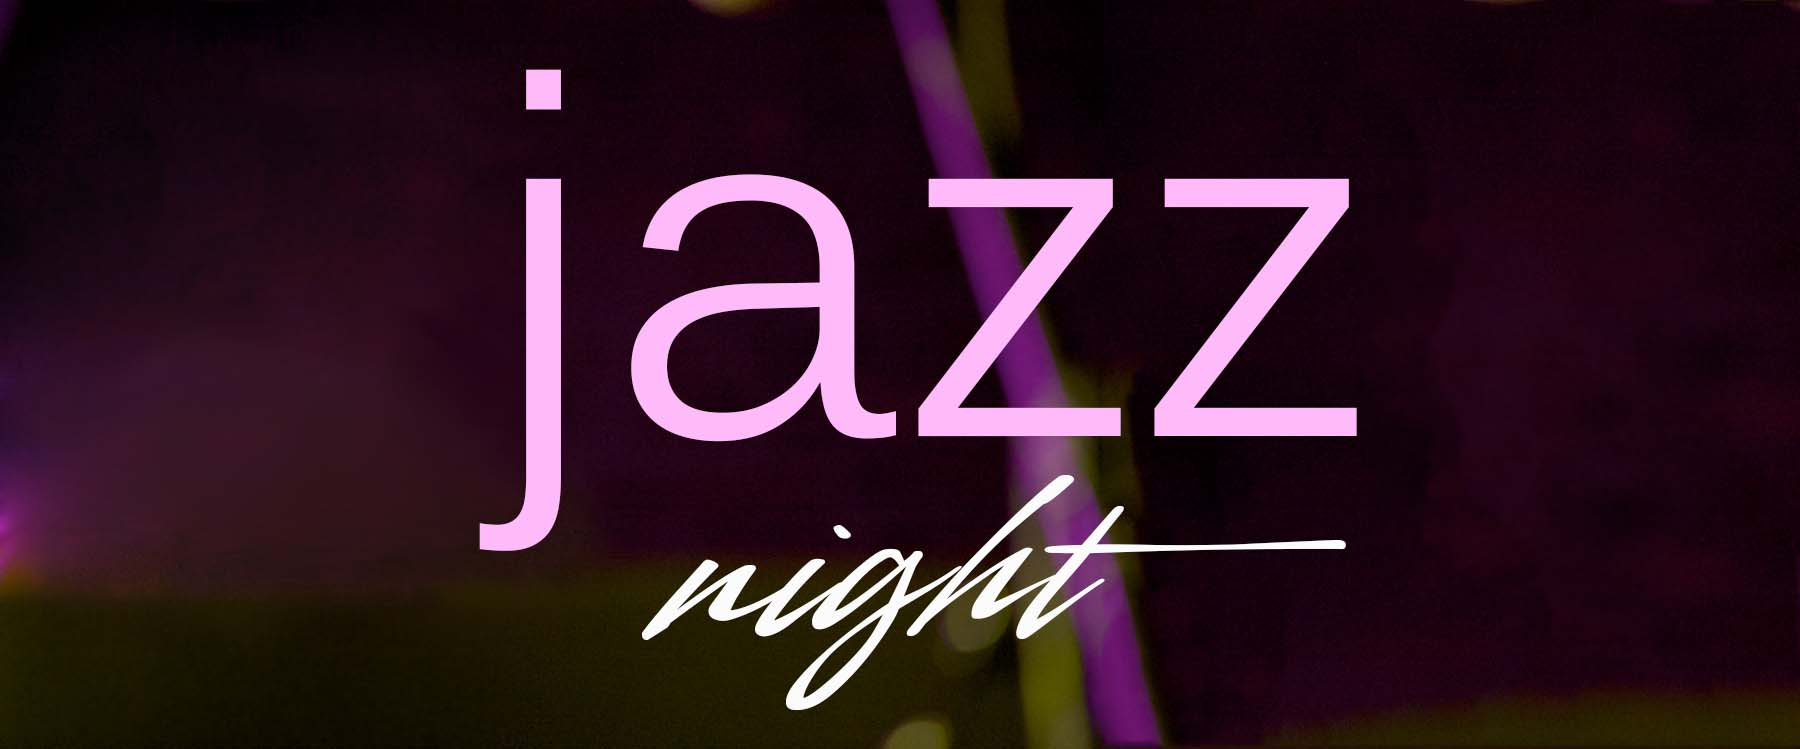 Jazz night logo